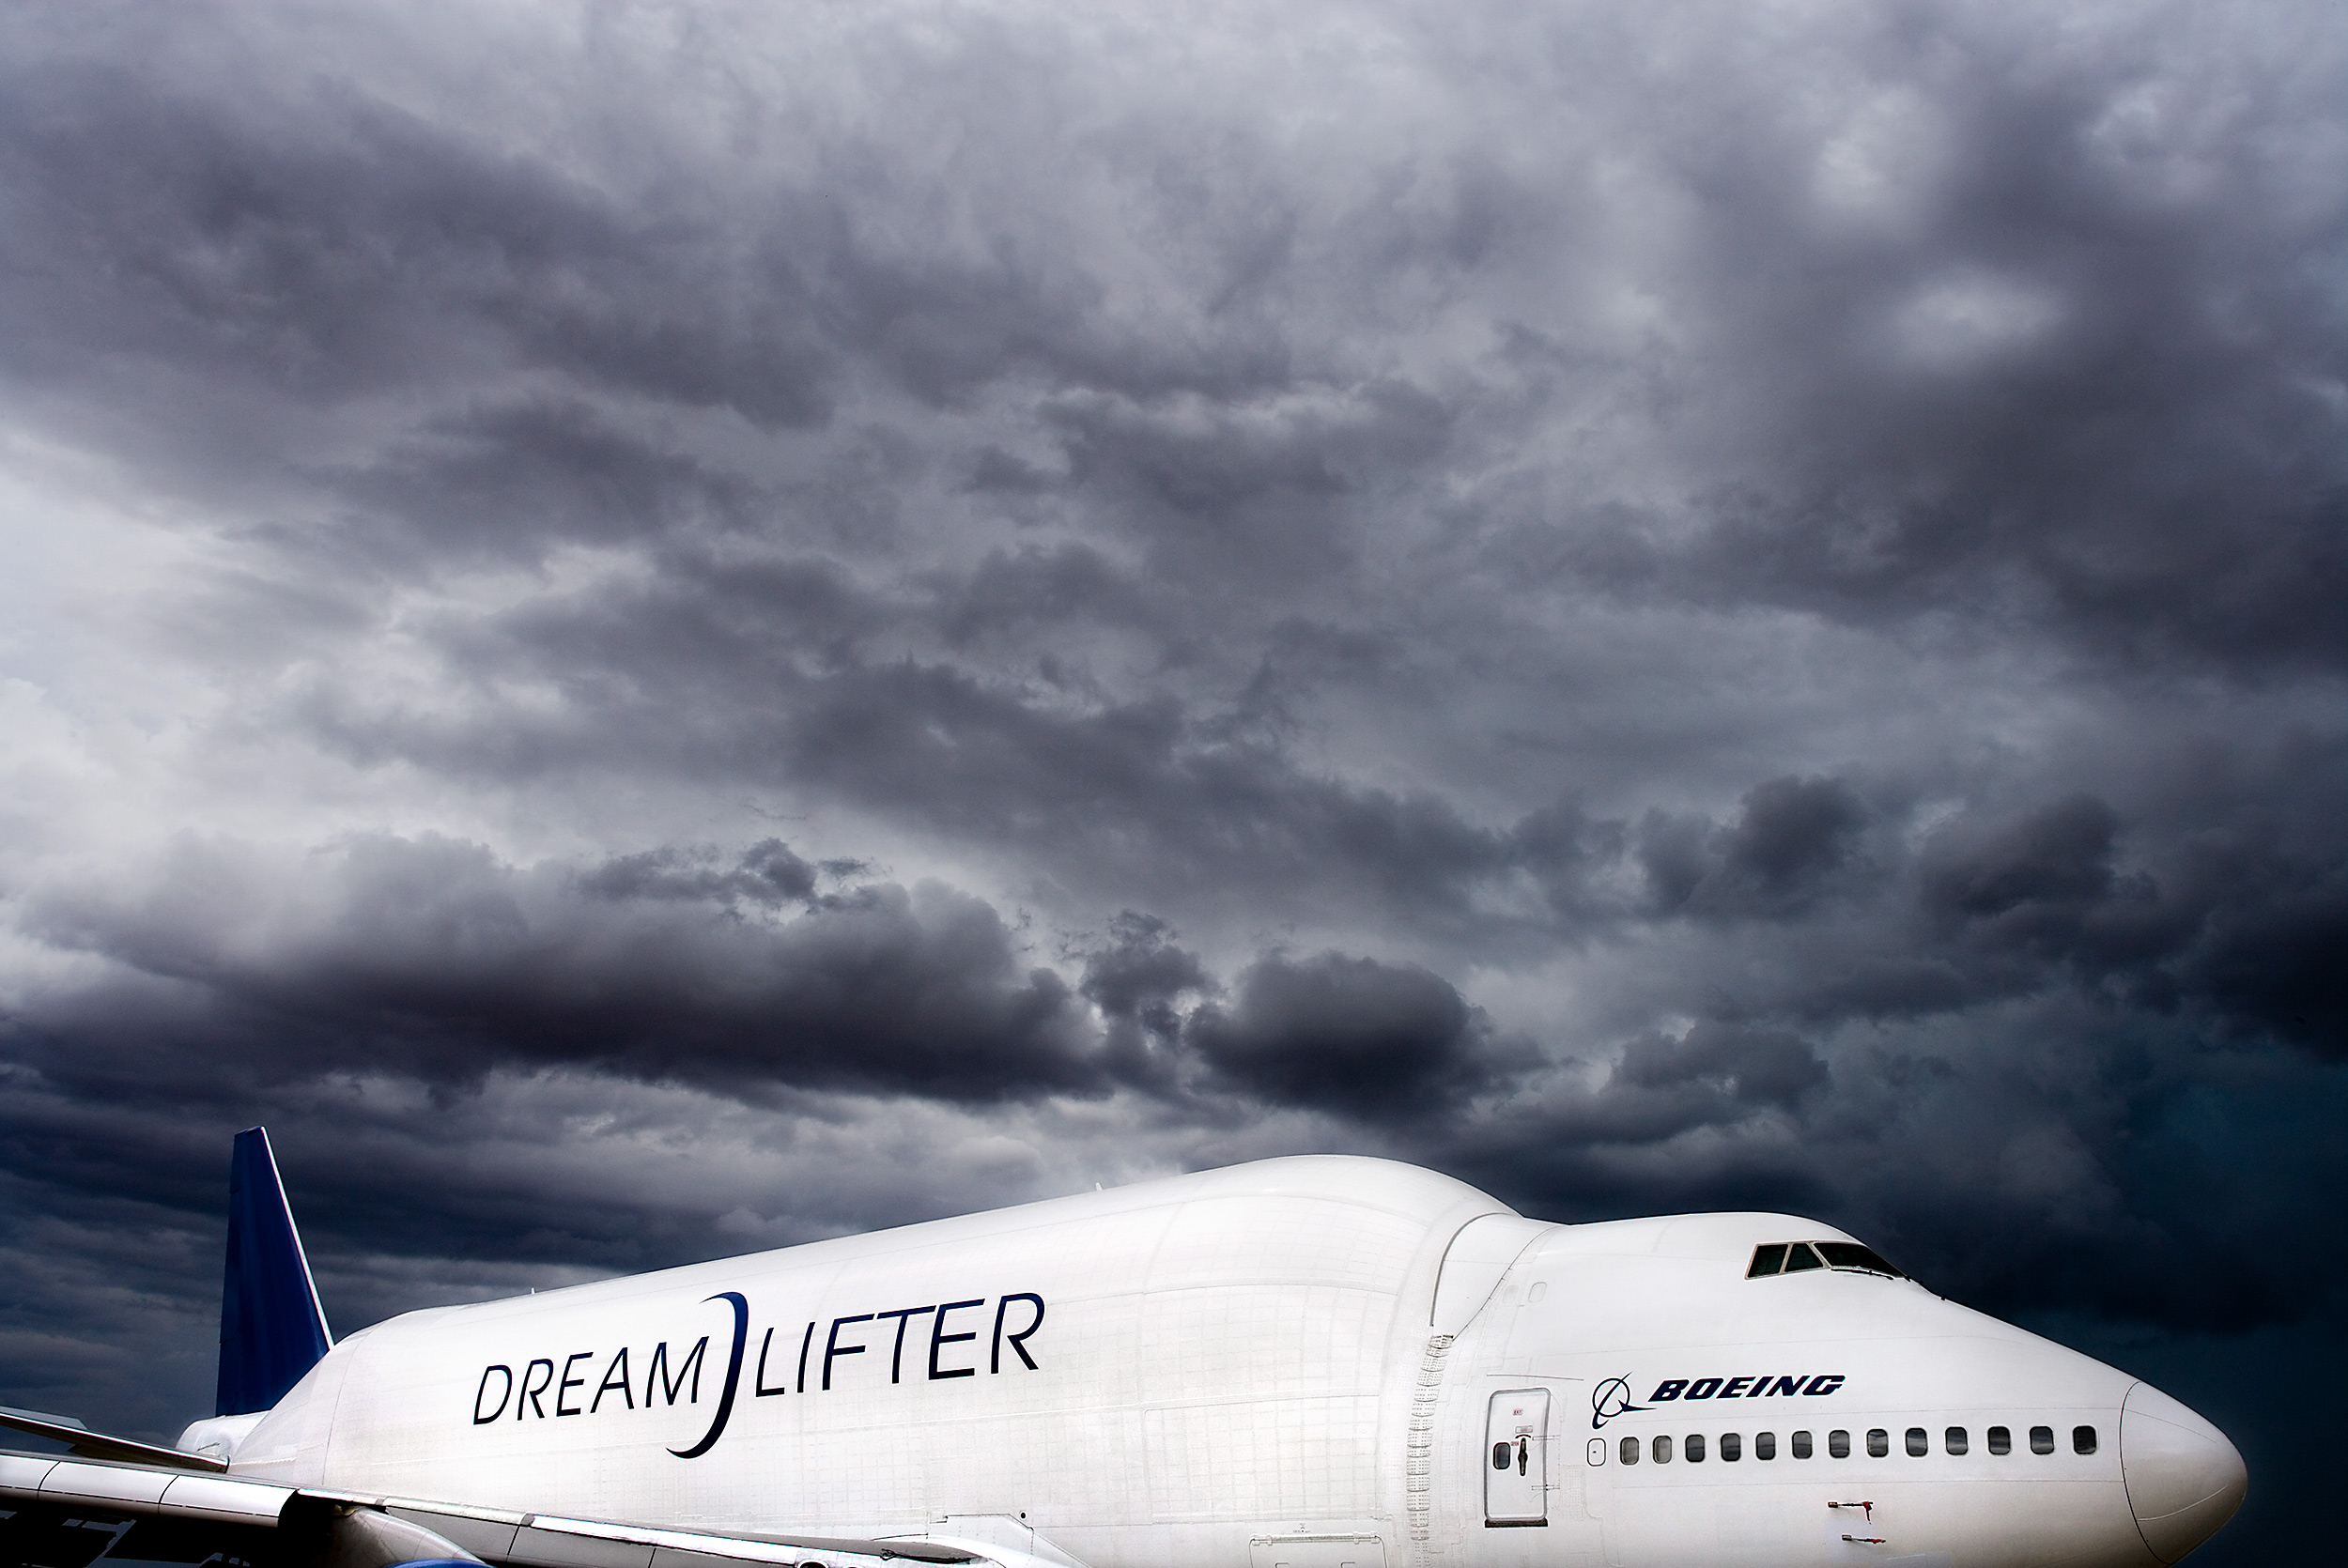 Boeing Dreamlifter - Steve Craft Photography - Phoenix Arizona Commercial Photographer